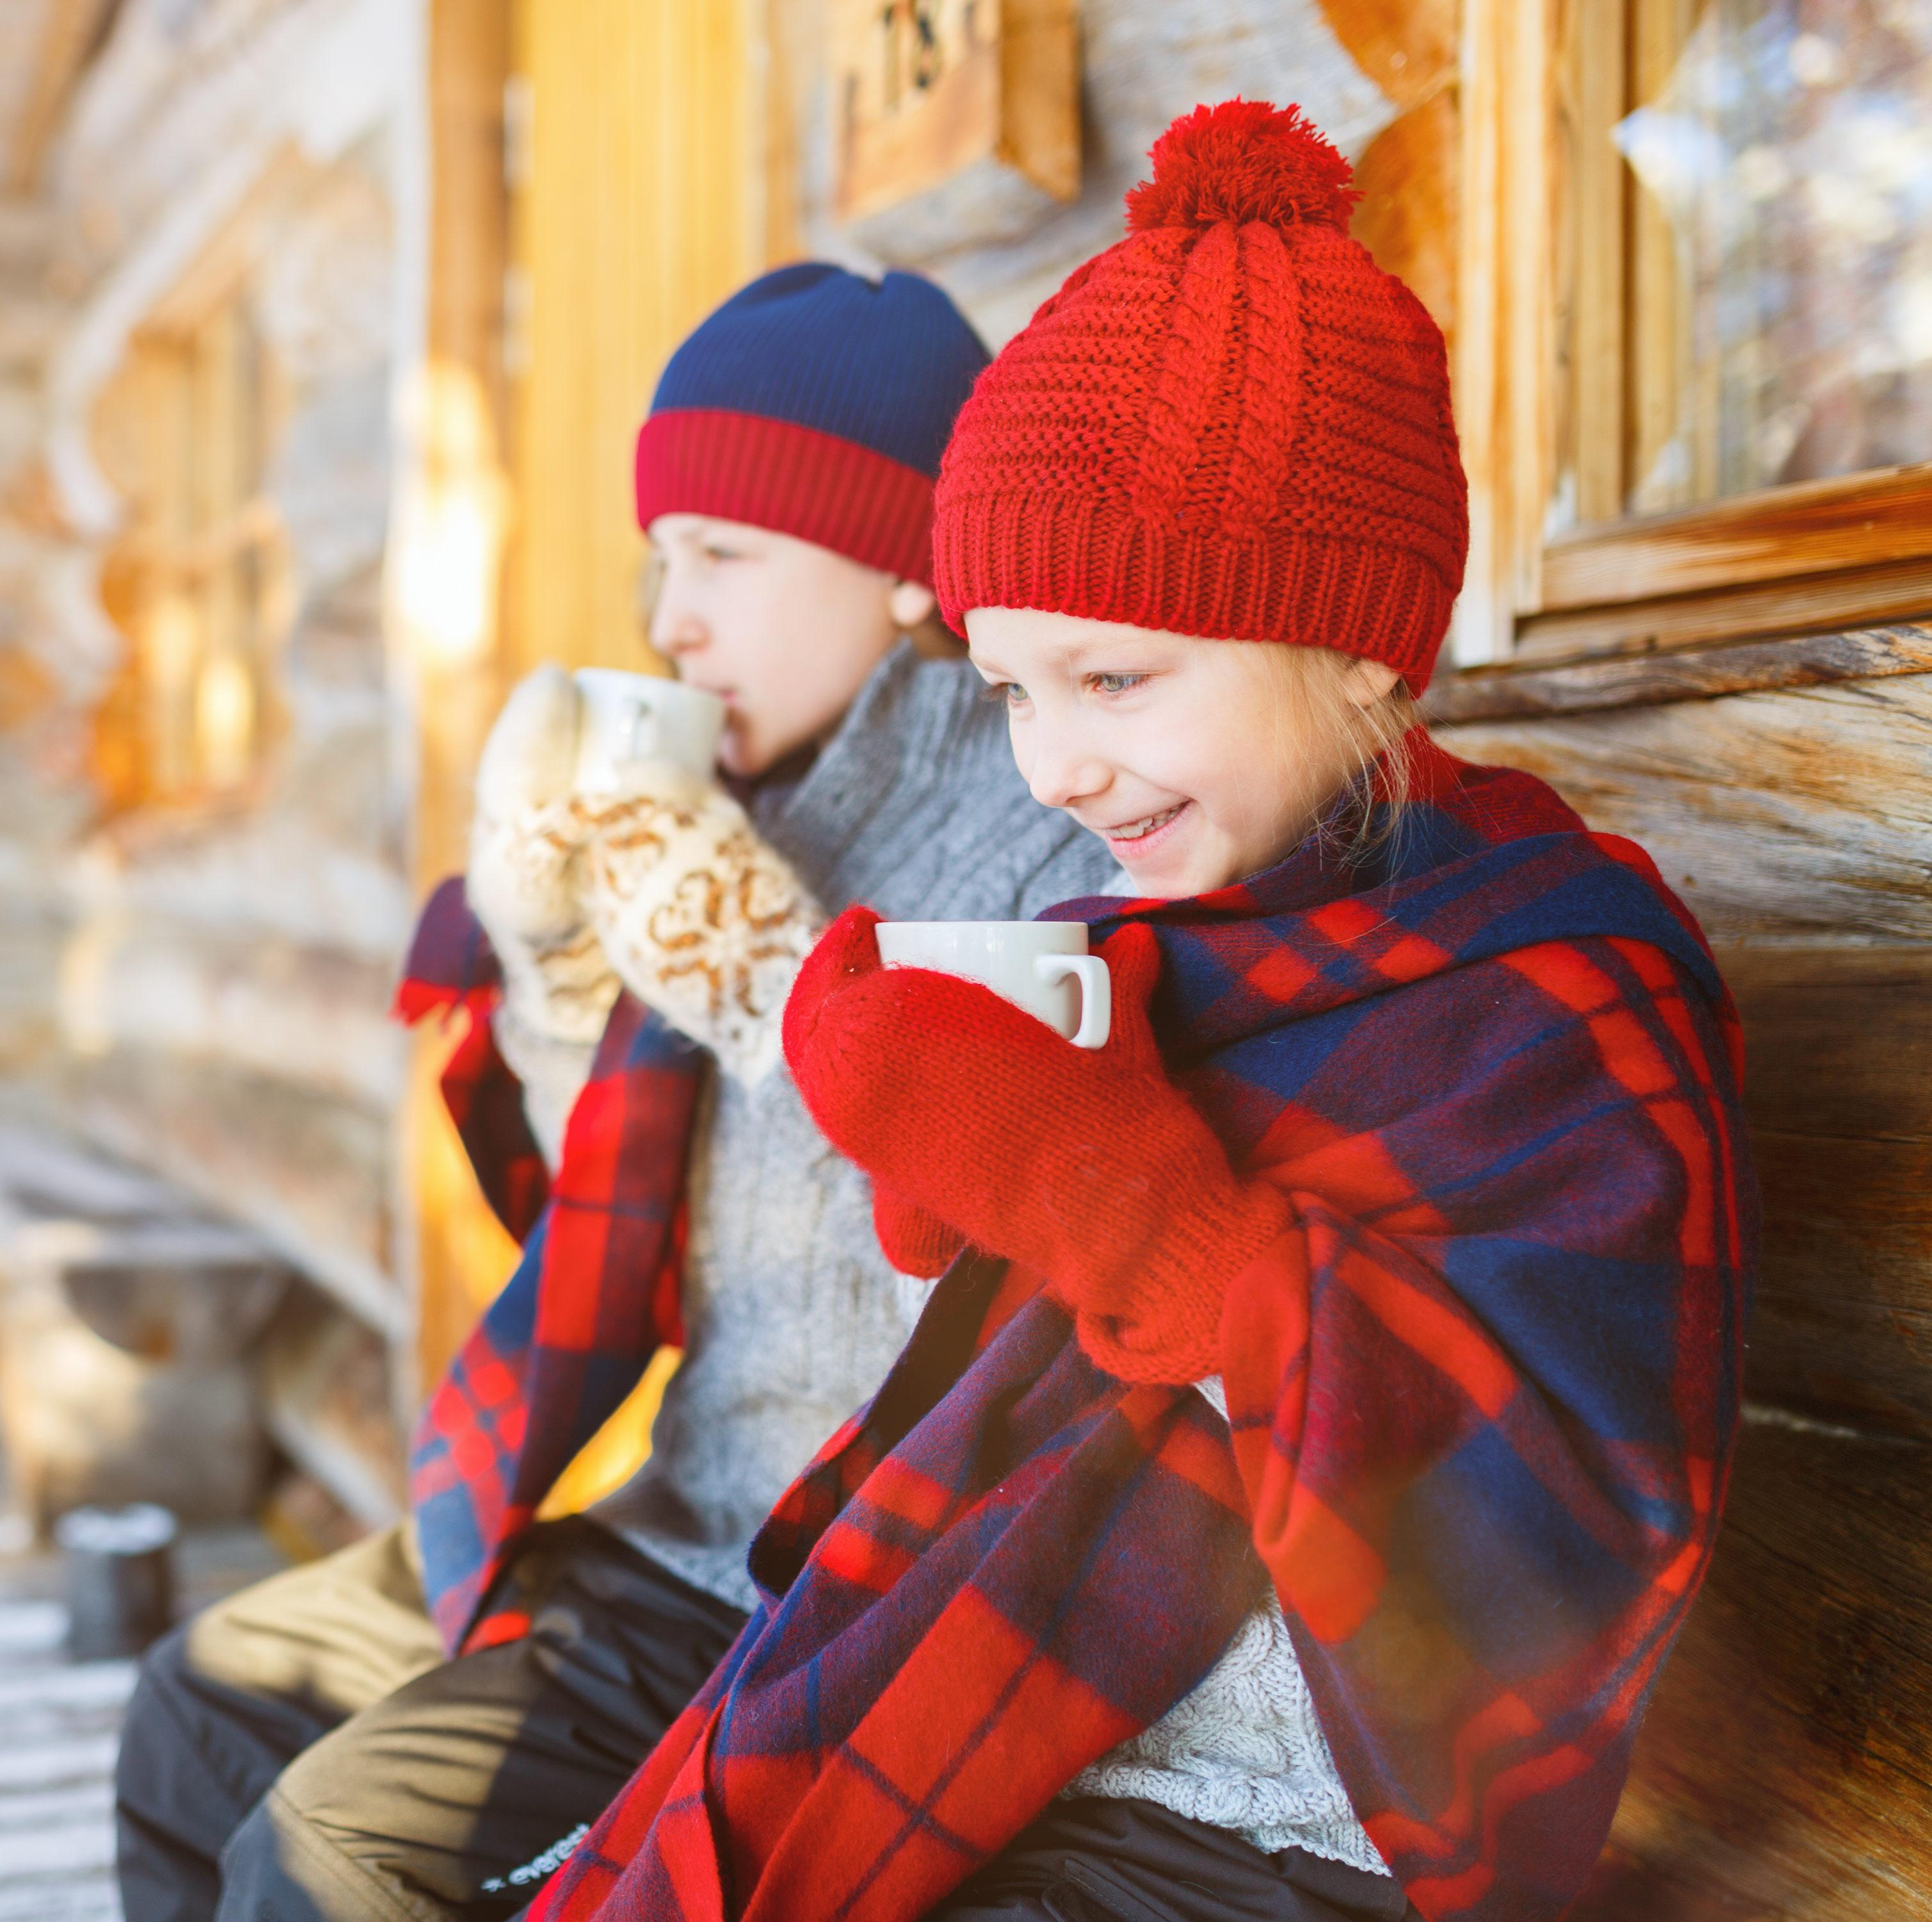 Holiday Events at the Cambridge Self-Help Food Bank